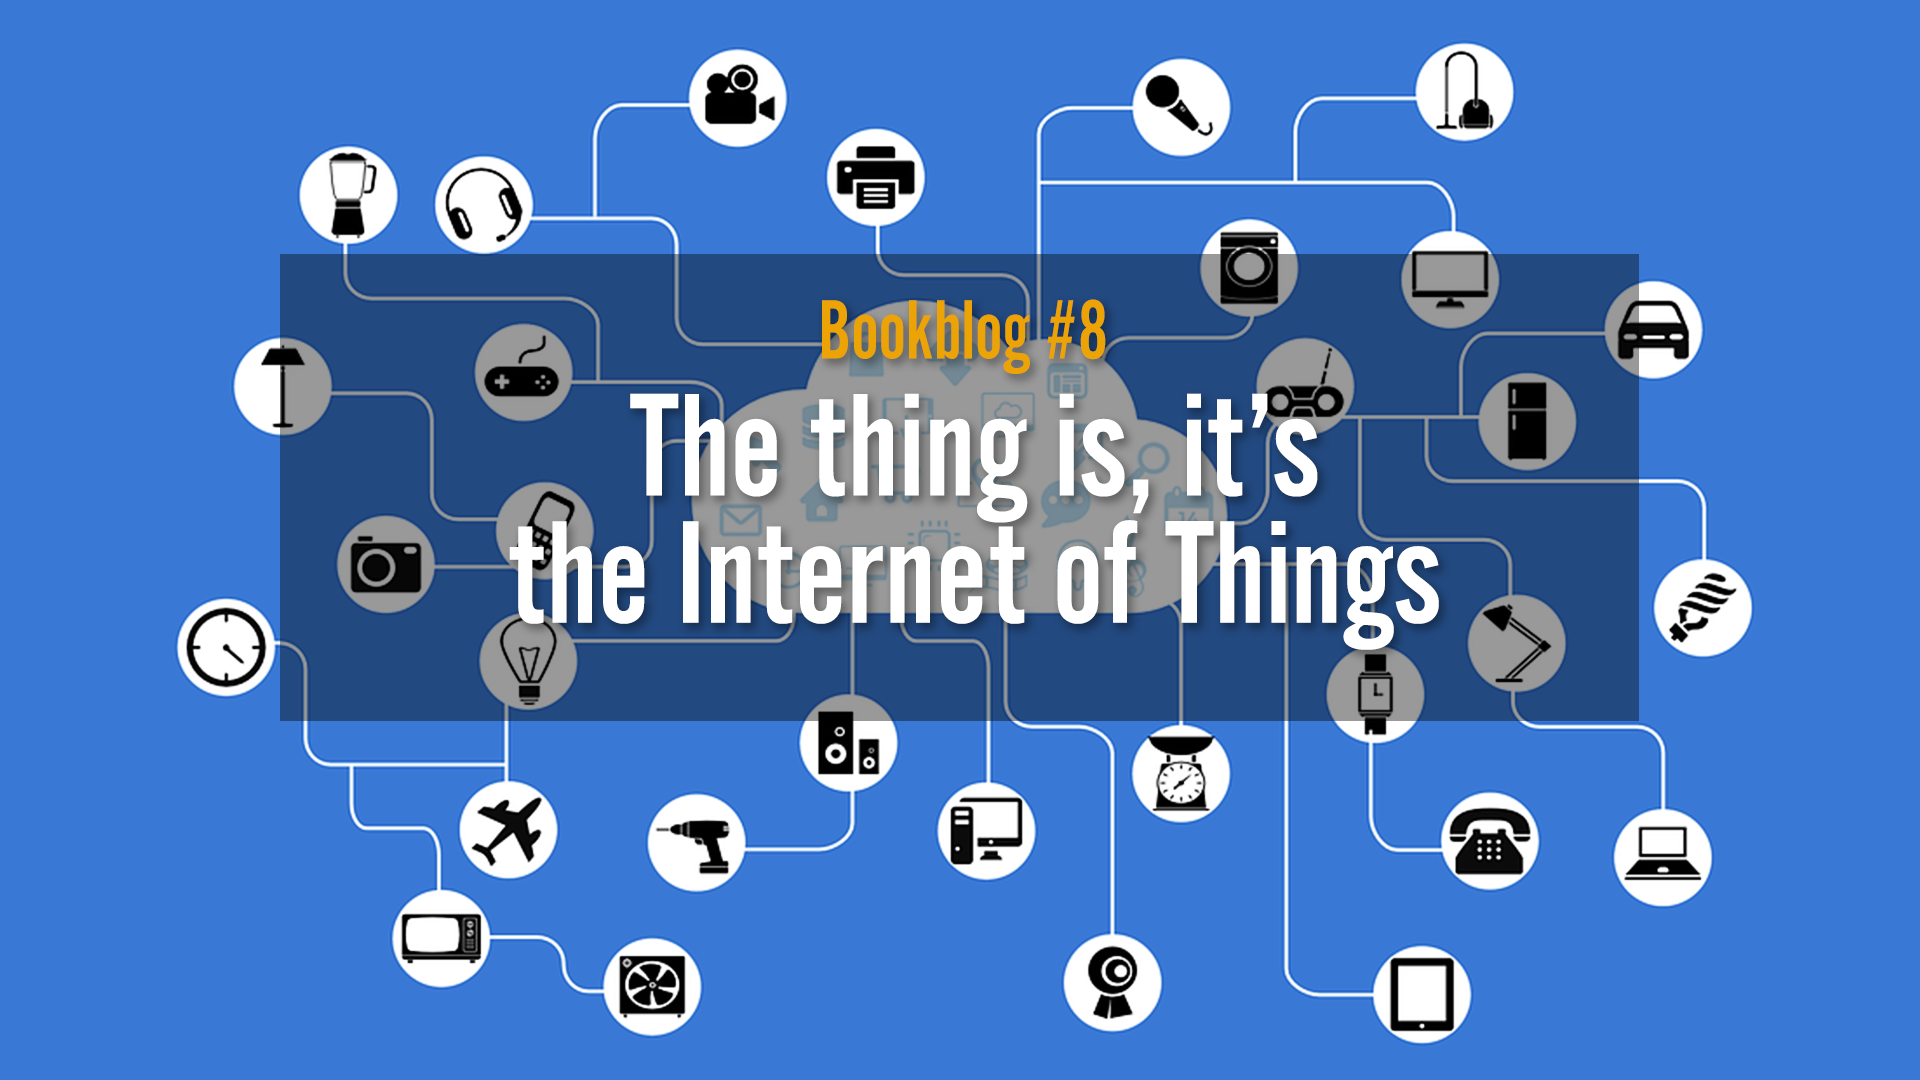 The thing is, it's the Internet of Things